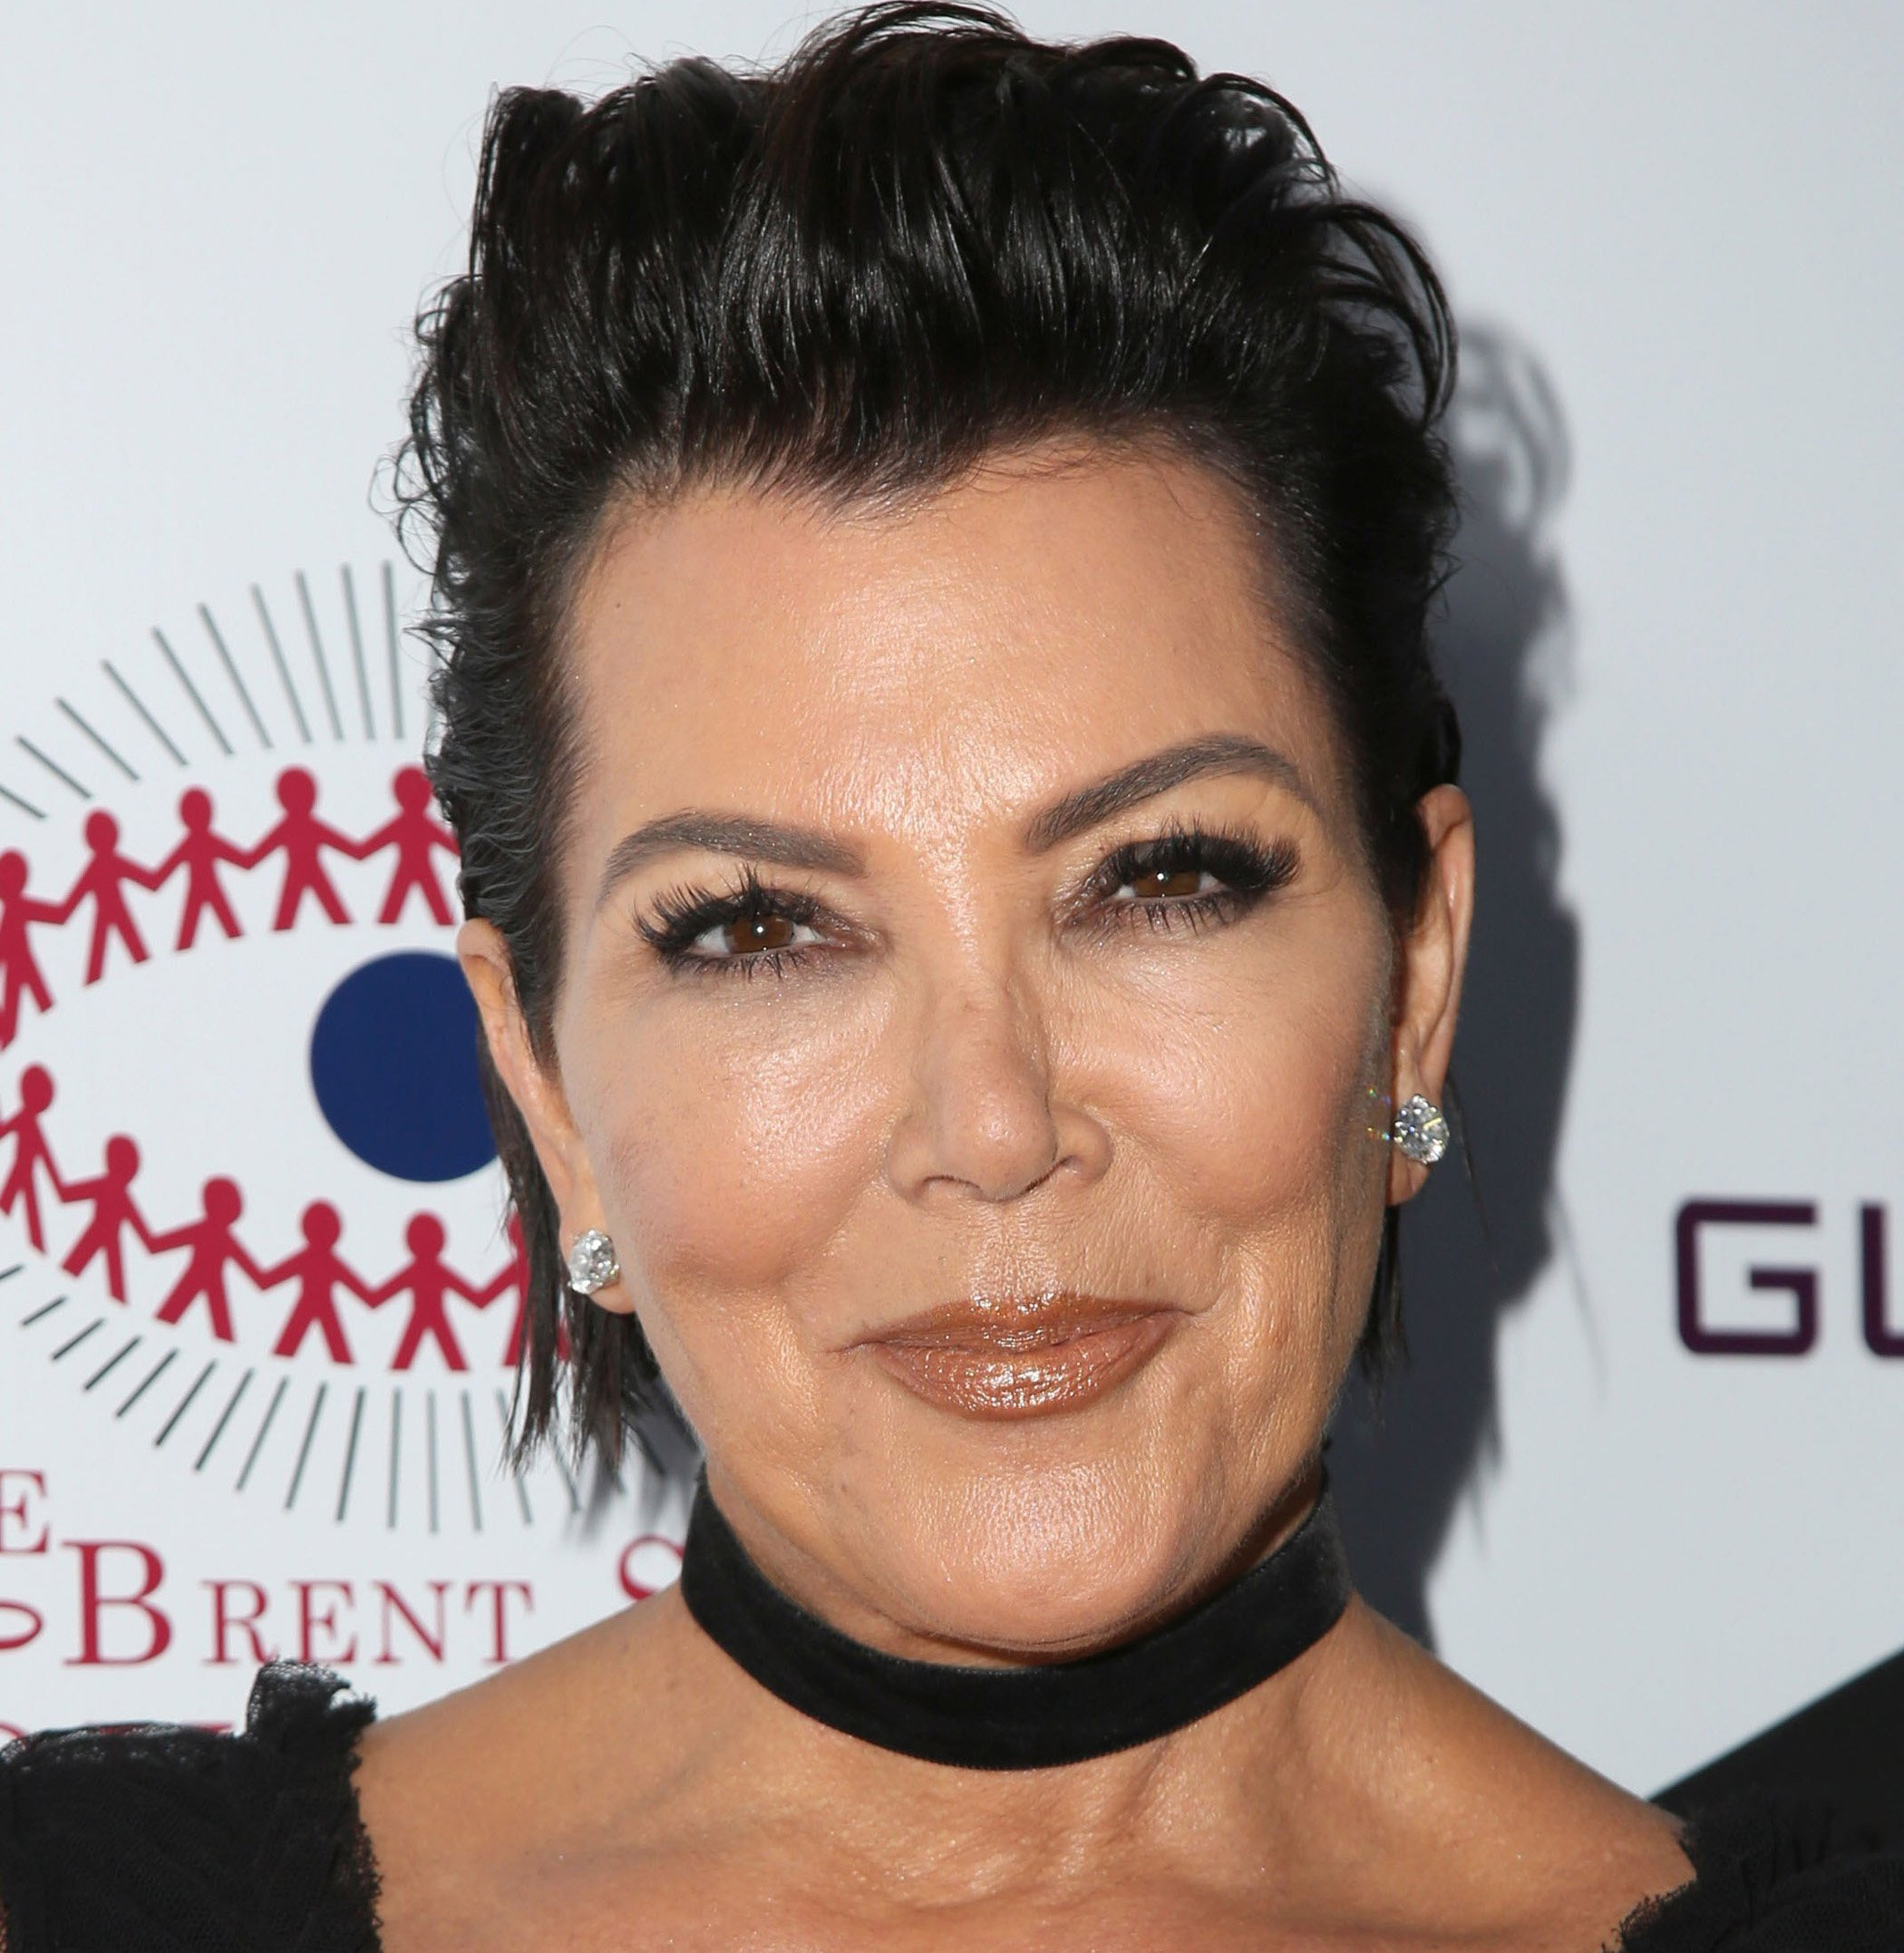 Kris Jenner hopes David Schwimmer wins Emmy for playing her ex